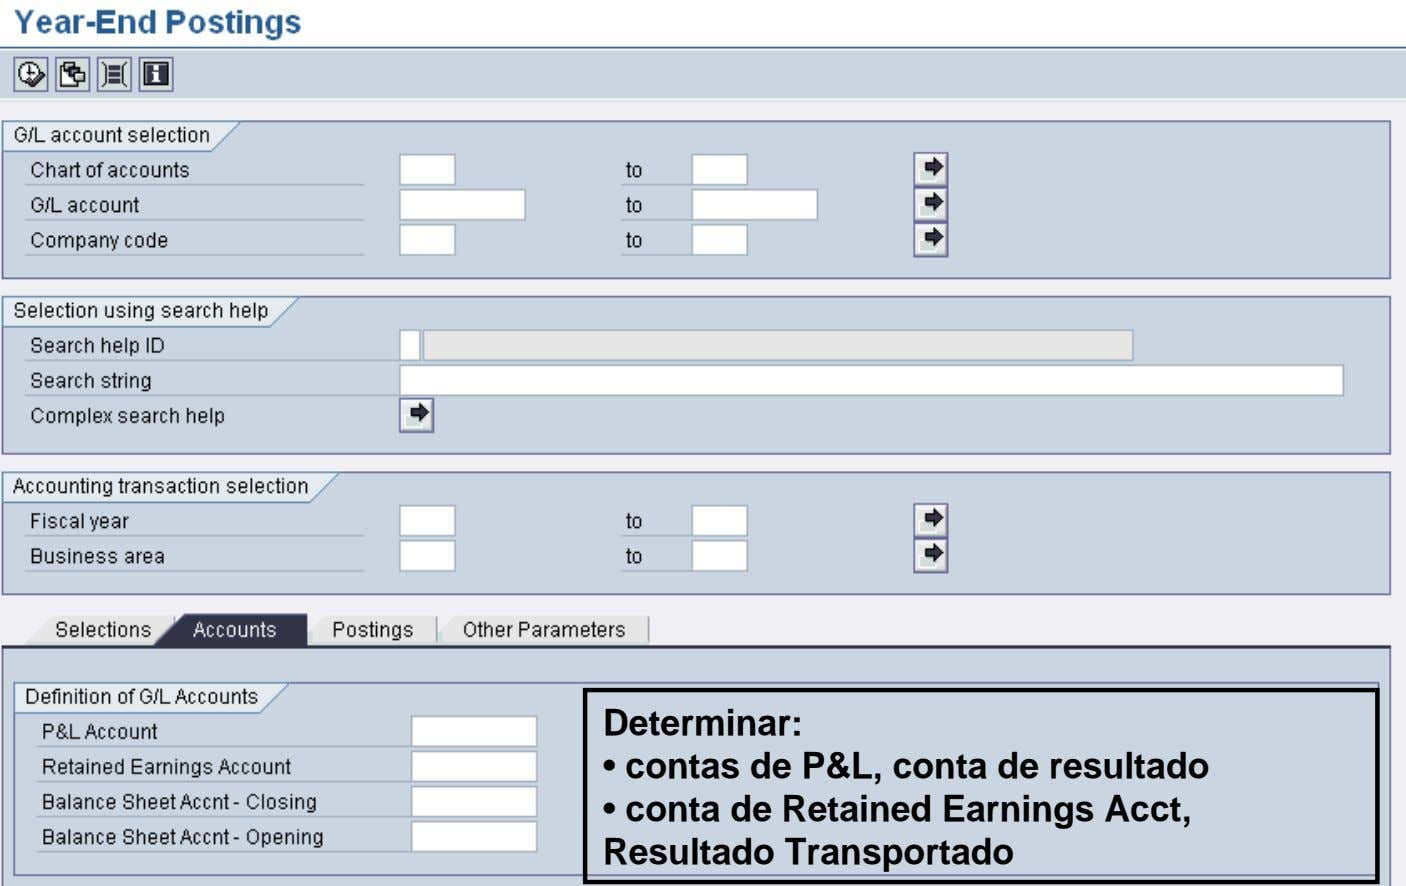 Determinar: • contas de P&L, conta de resultado • conta de Retained Earnings Acct, Resultado